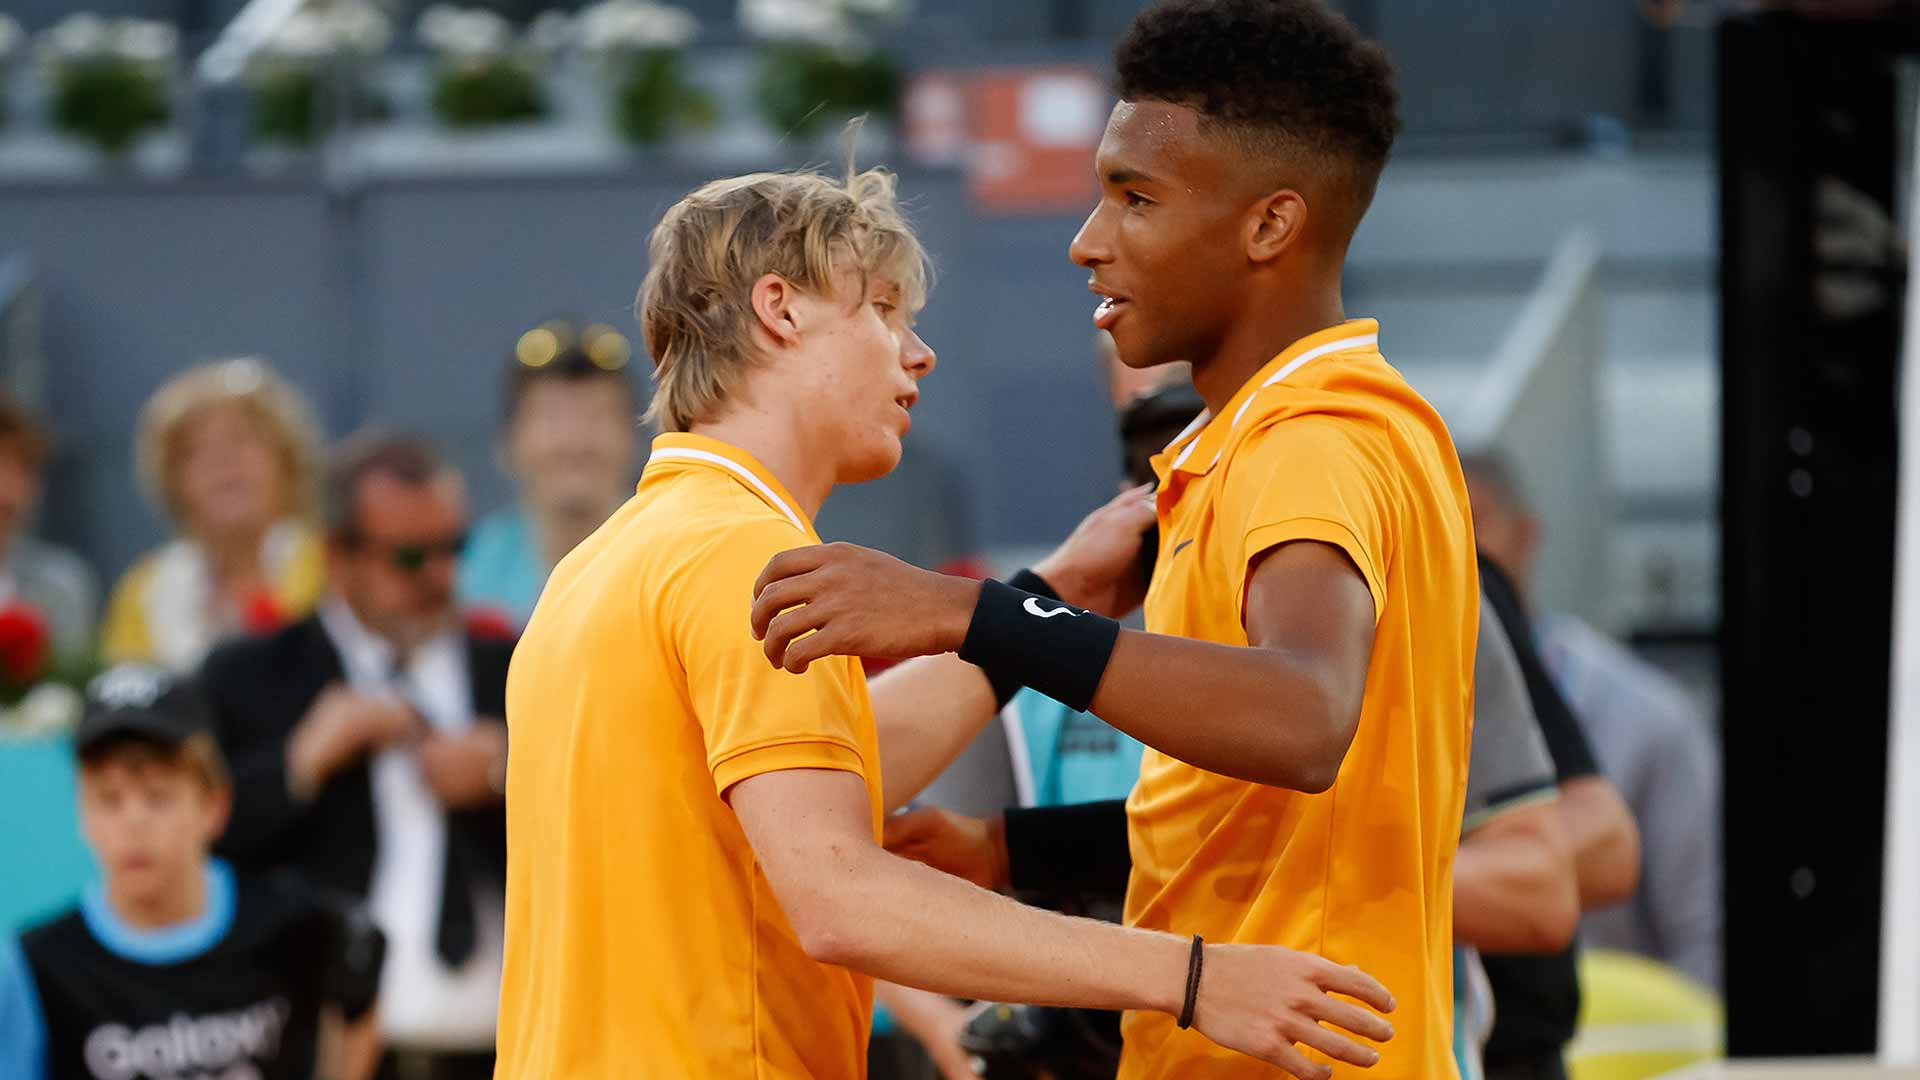 Canadians <a href='https://www.atptour.com/en/players/denis-shapovalov/su55/overview'>Denis Shapovalov</a> and <a href='https://www.atptour.com/en/players/felix-auger-aliassime/ag37/overview'>Felix Auger-Aliassime</a> at the <a href='https://www.atptour.com/en/tournaments/madrid/1536/overview'>Mutua Madrid Open</a>